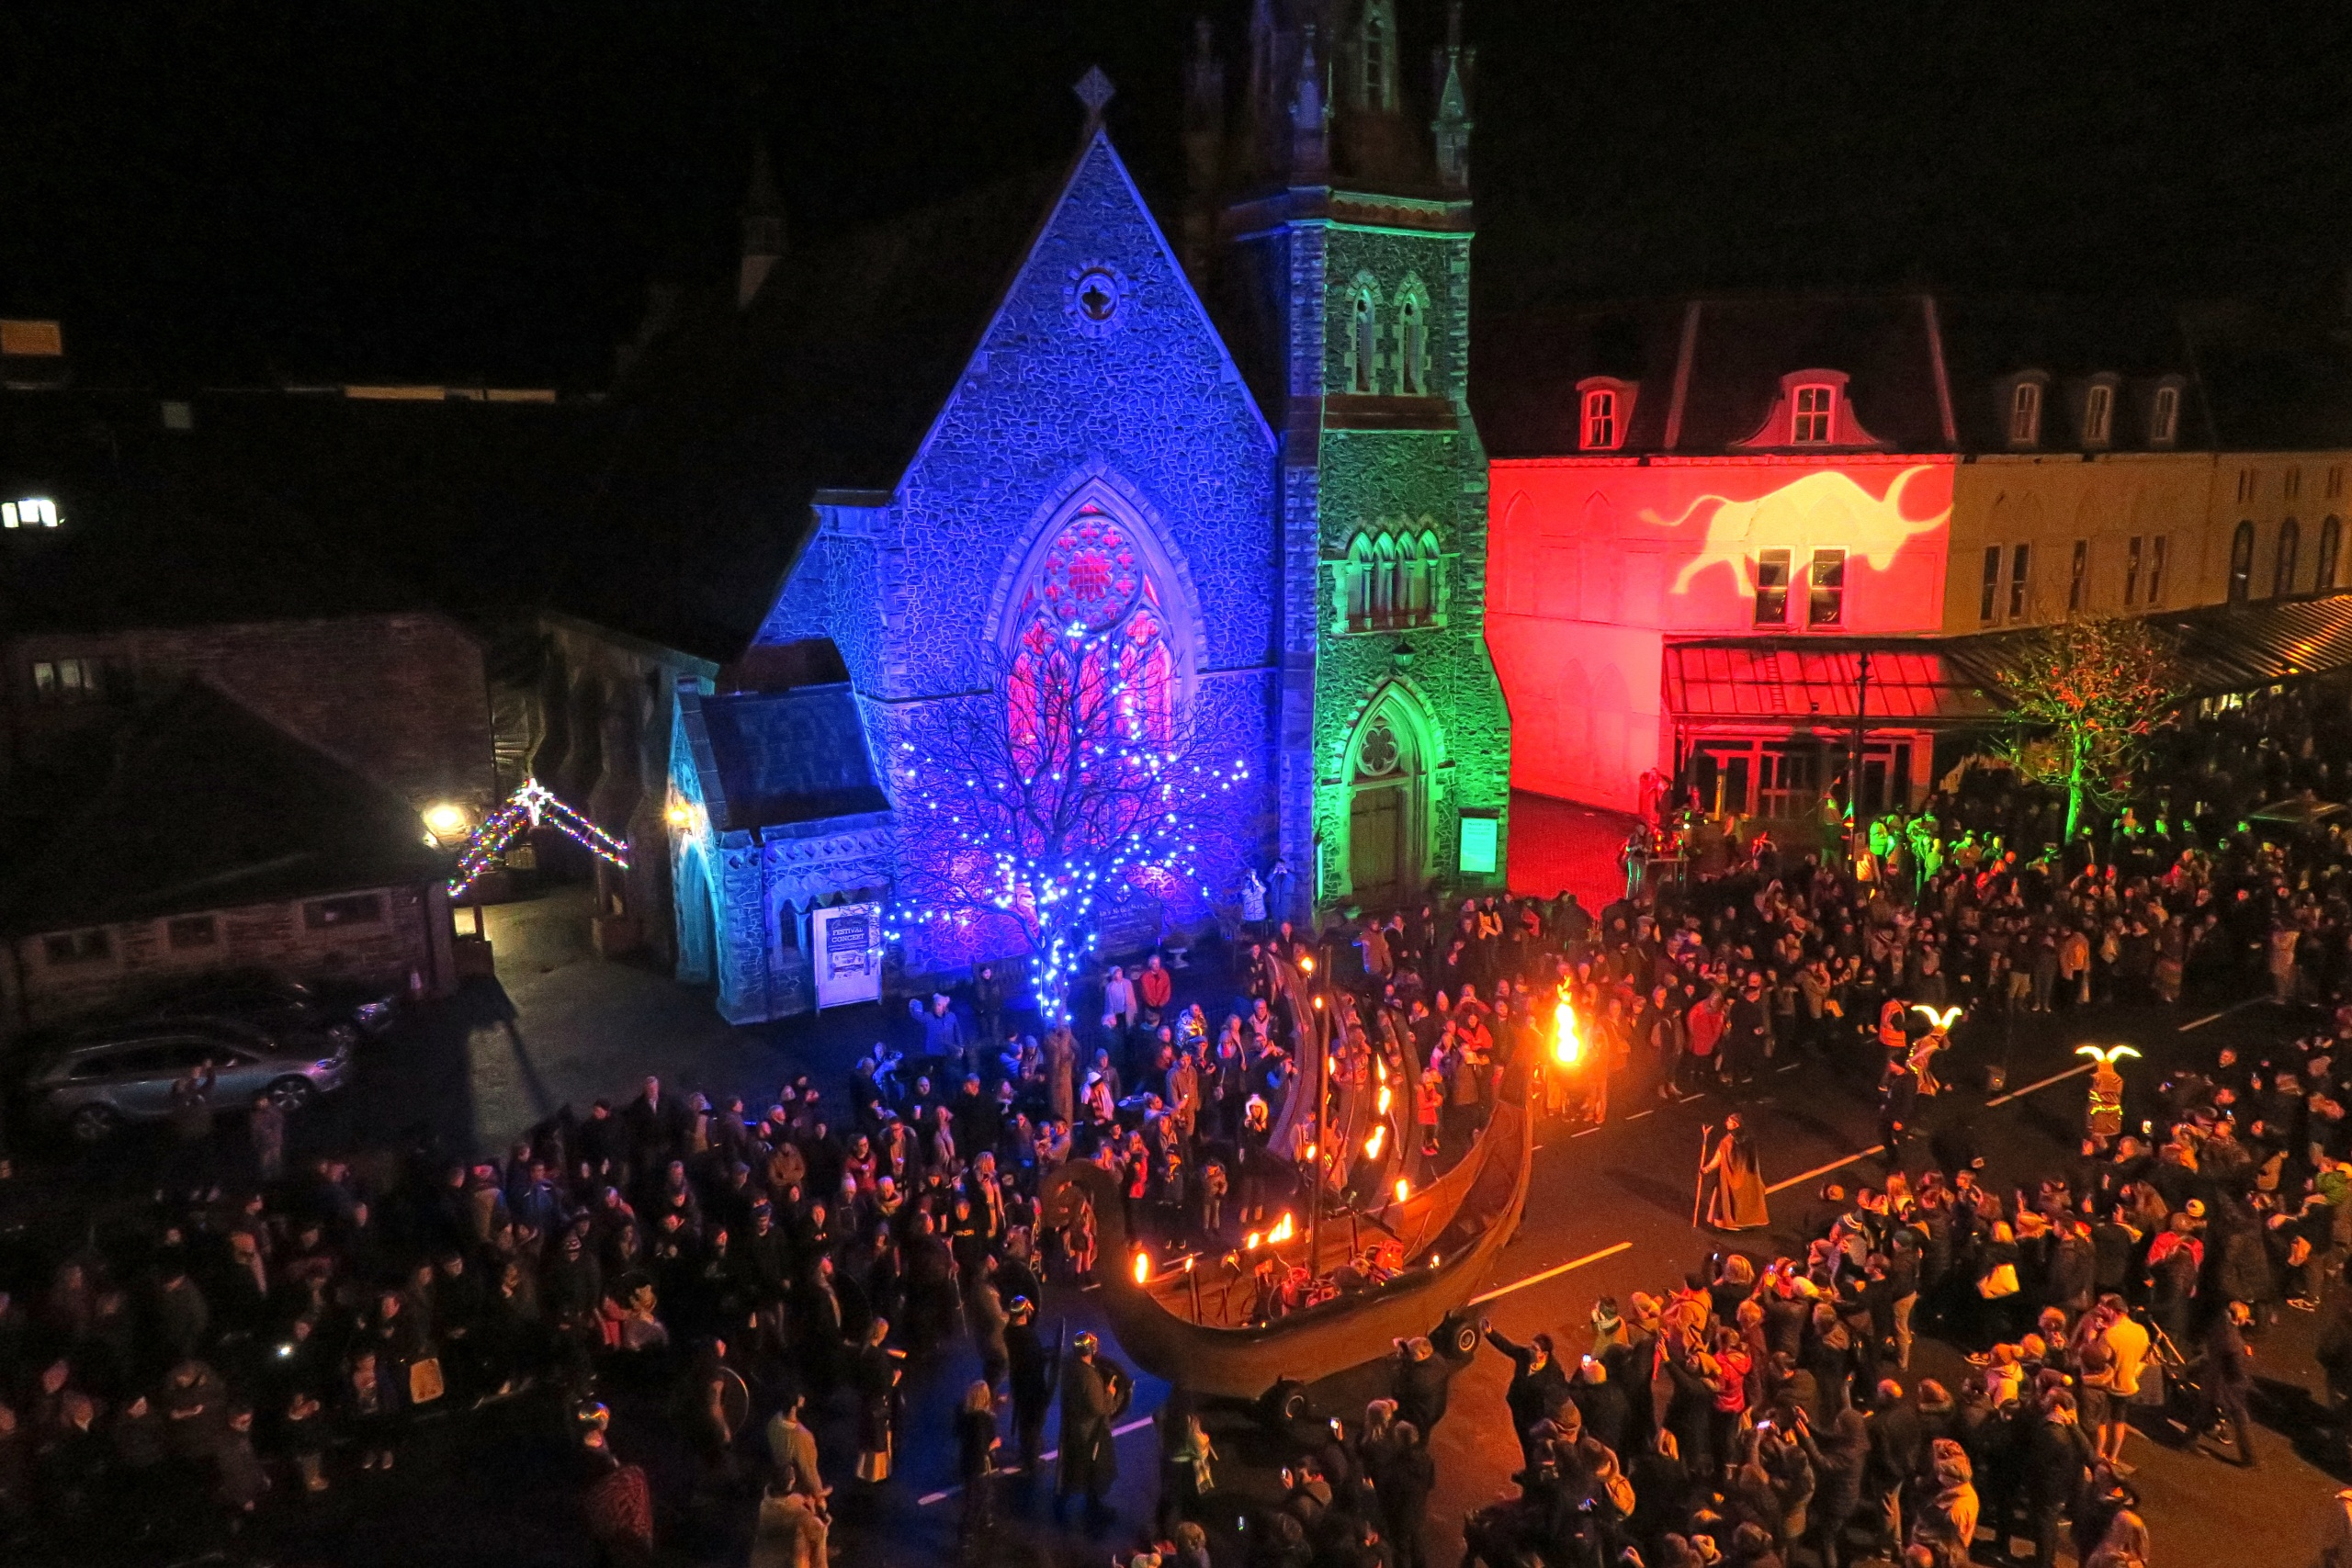 Coloured outdoor lighting at the Llandudno Winter Light / Golau Gaeaf event, in North Wales. To complement the parade, St Johns Church on Mostyn Steet and adjacent buildings were illuminated with weatherproof LED flood lighting & gobo projections including a giant ox.